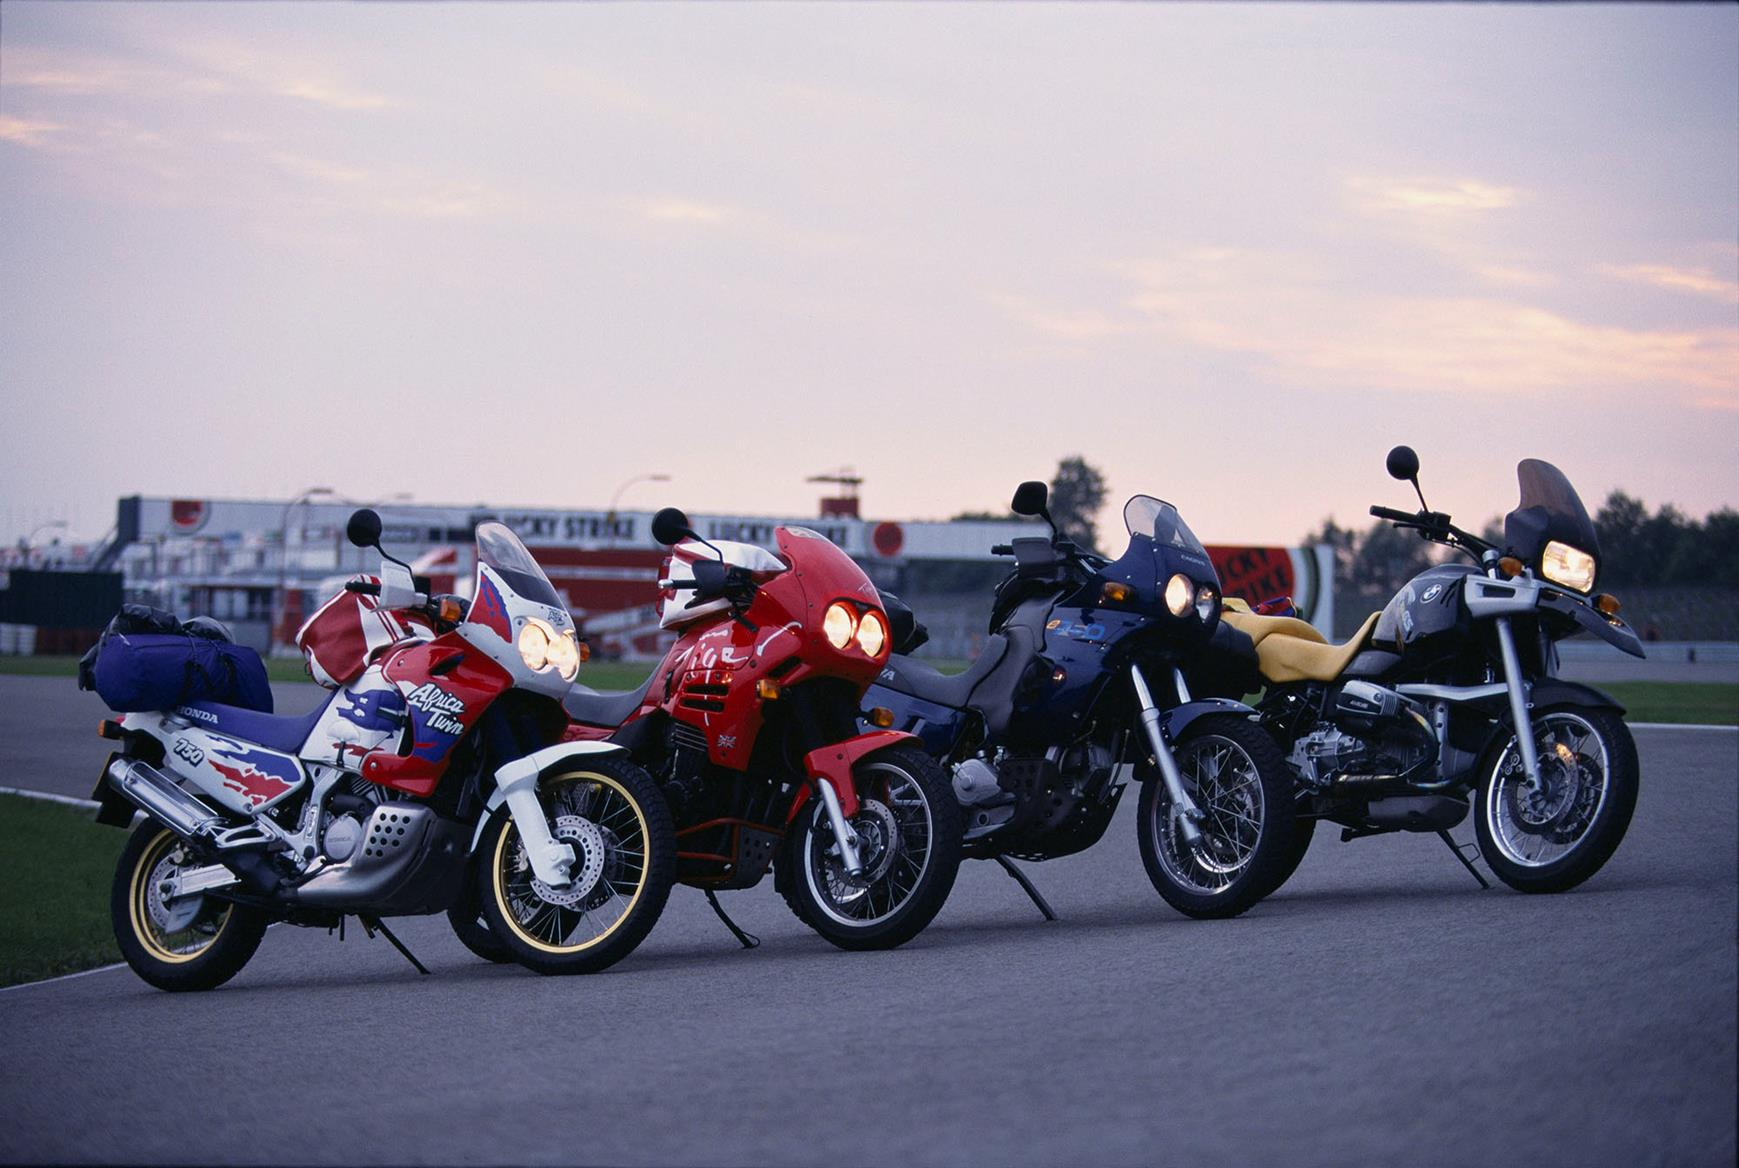 Honda Africa Twin, Triumph Tiger, Cagiva Elefant and BMW F800GS